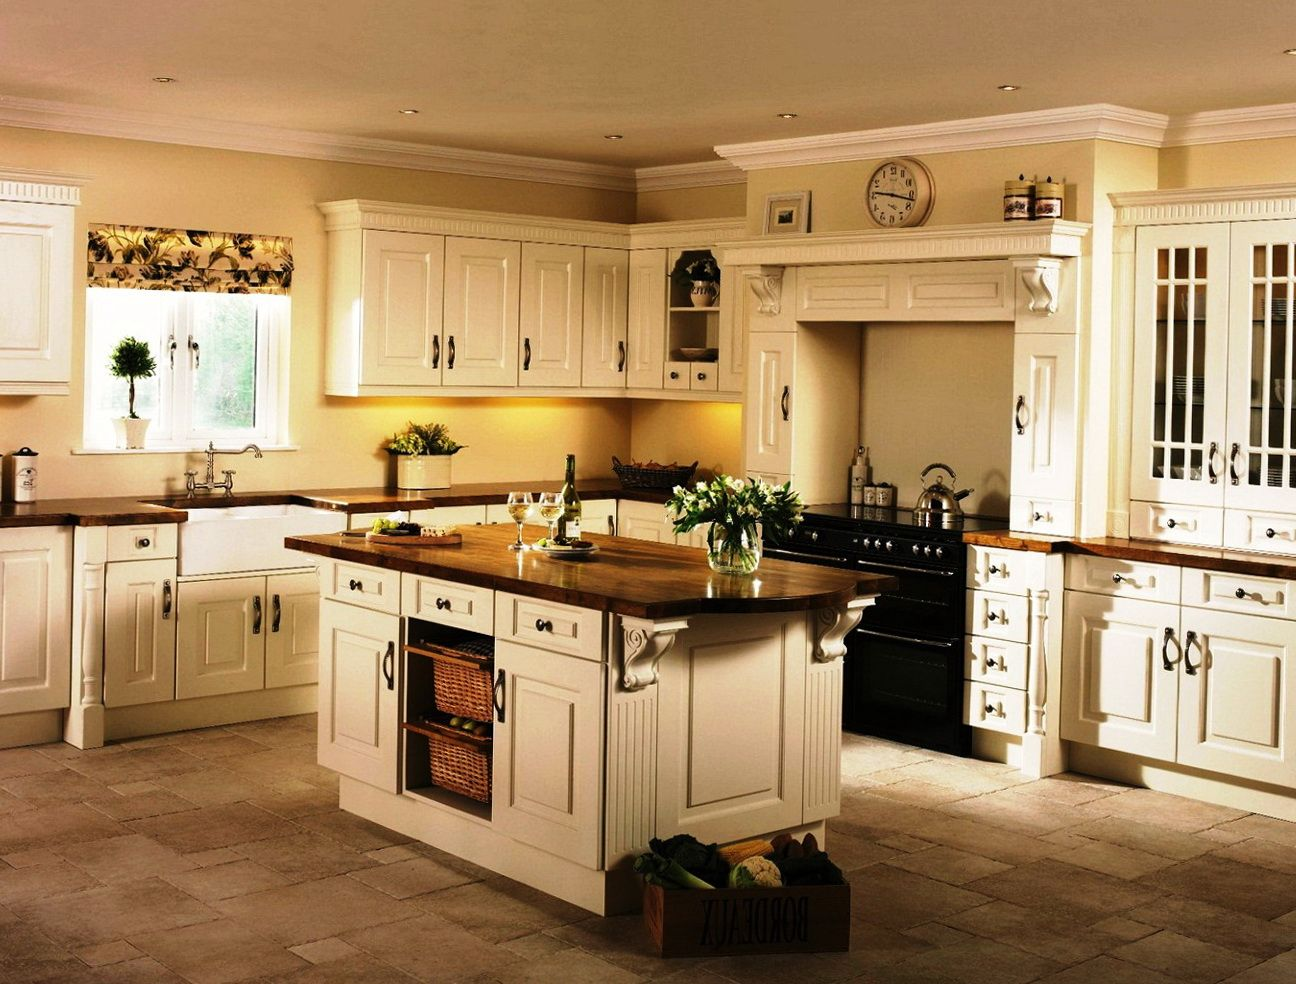 cream kitchen cabinets what colour walls kitchen rehab cottage kitchens